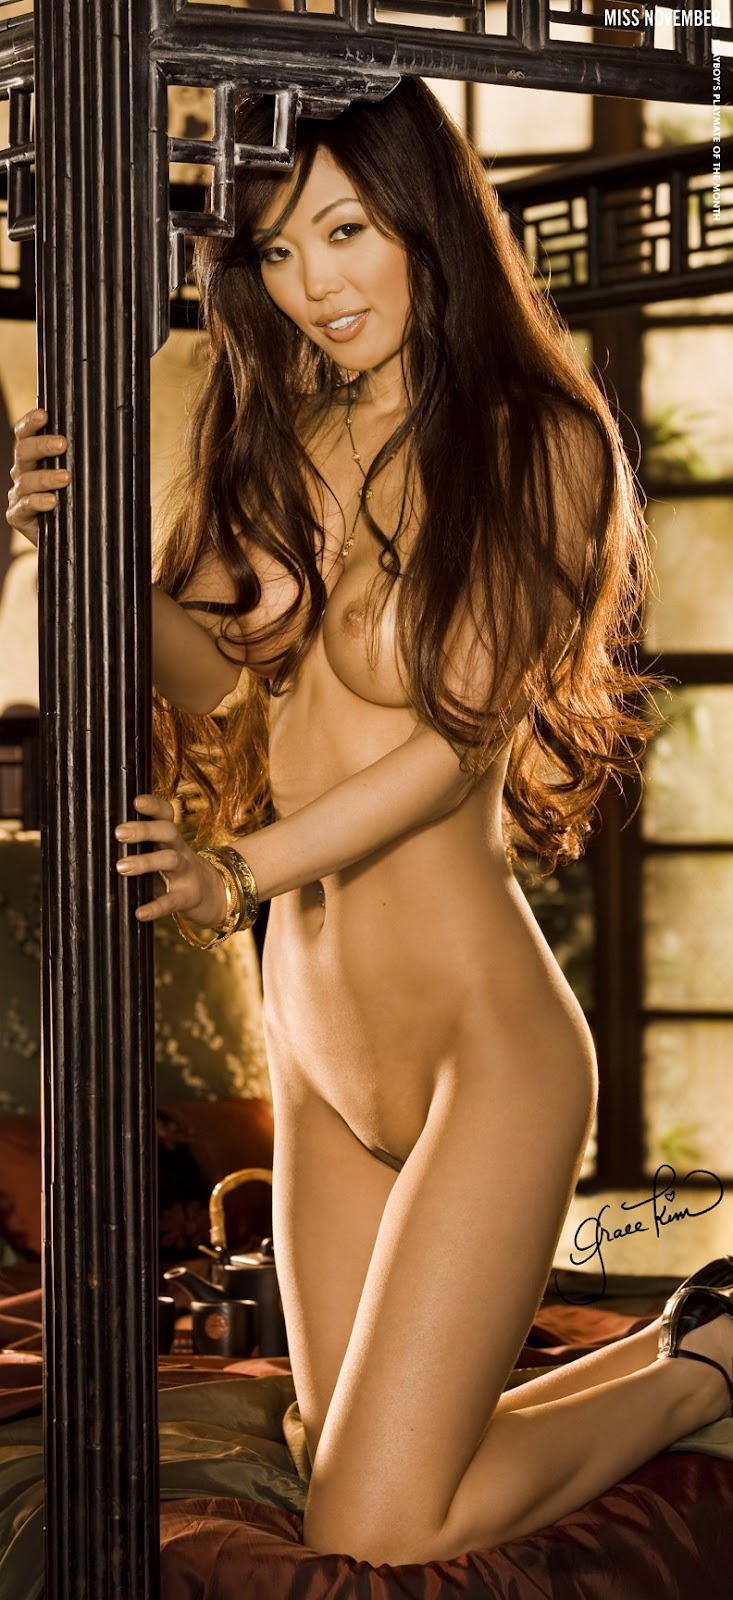 Claire sinclair playboy playmate of year of 2011